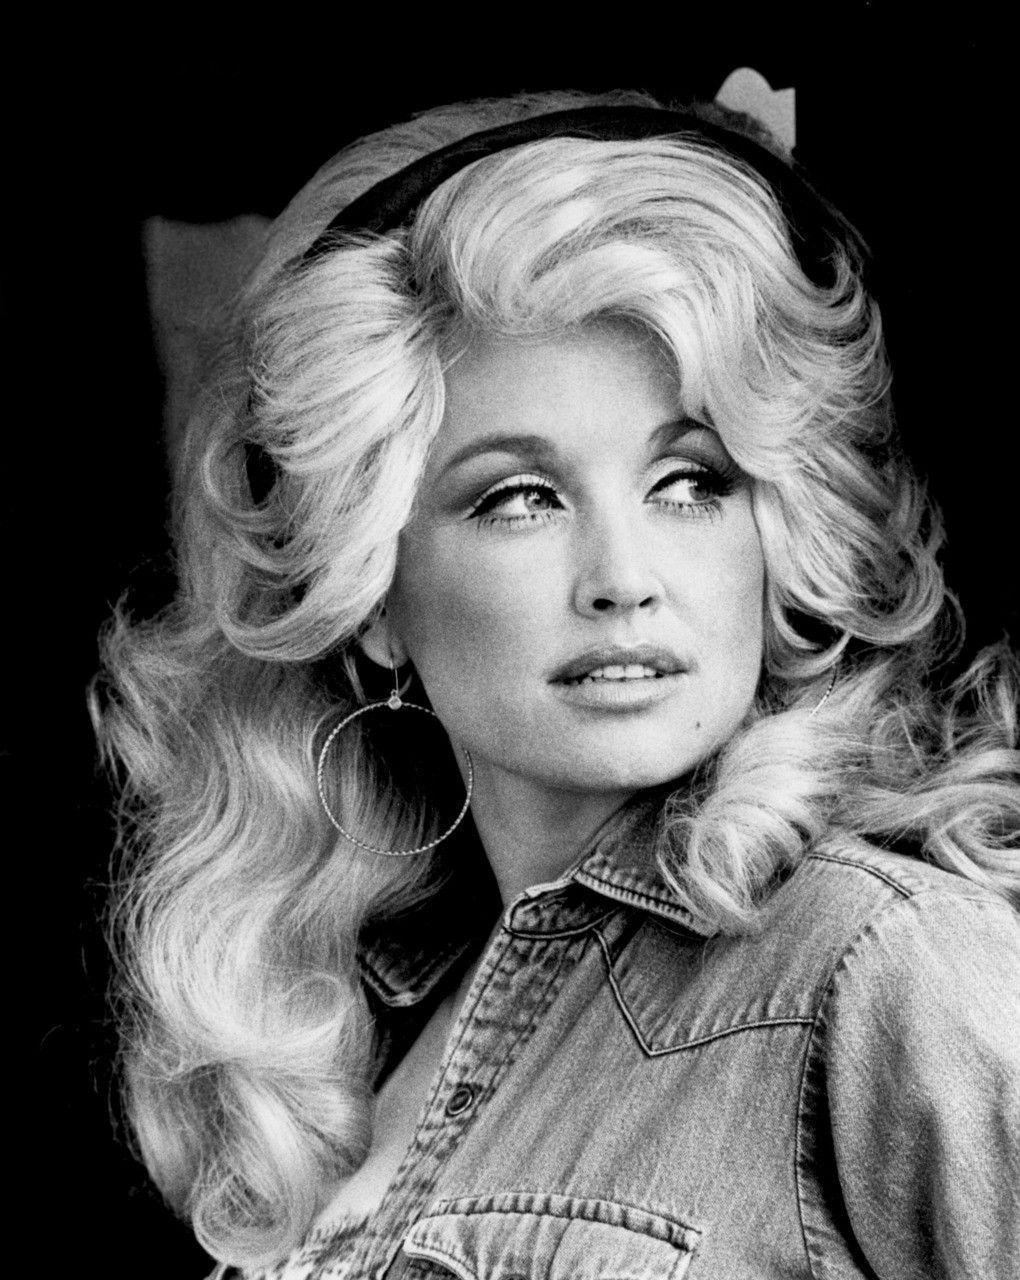 Dolly Parton #1162034 - People Images & Wallpapers on Jeweell